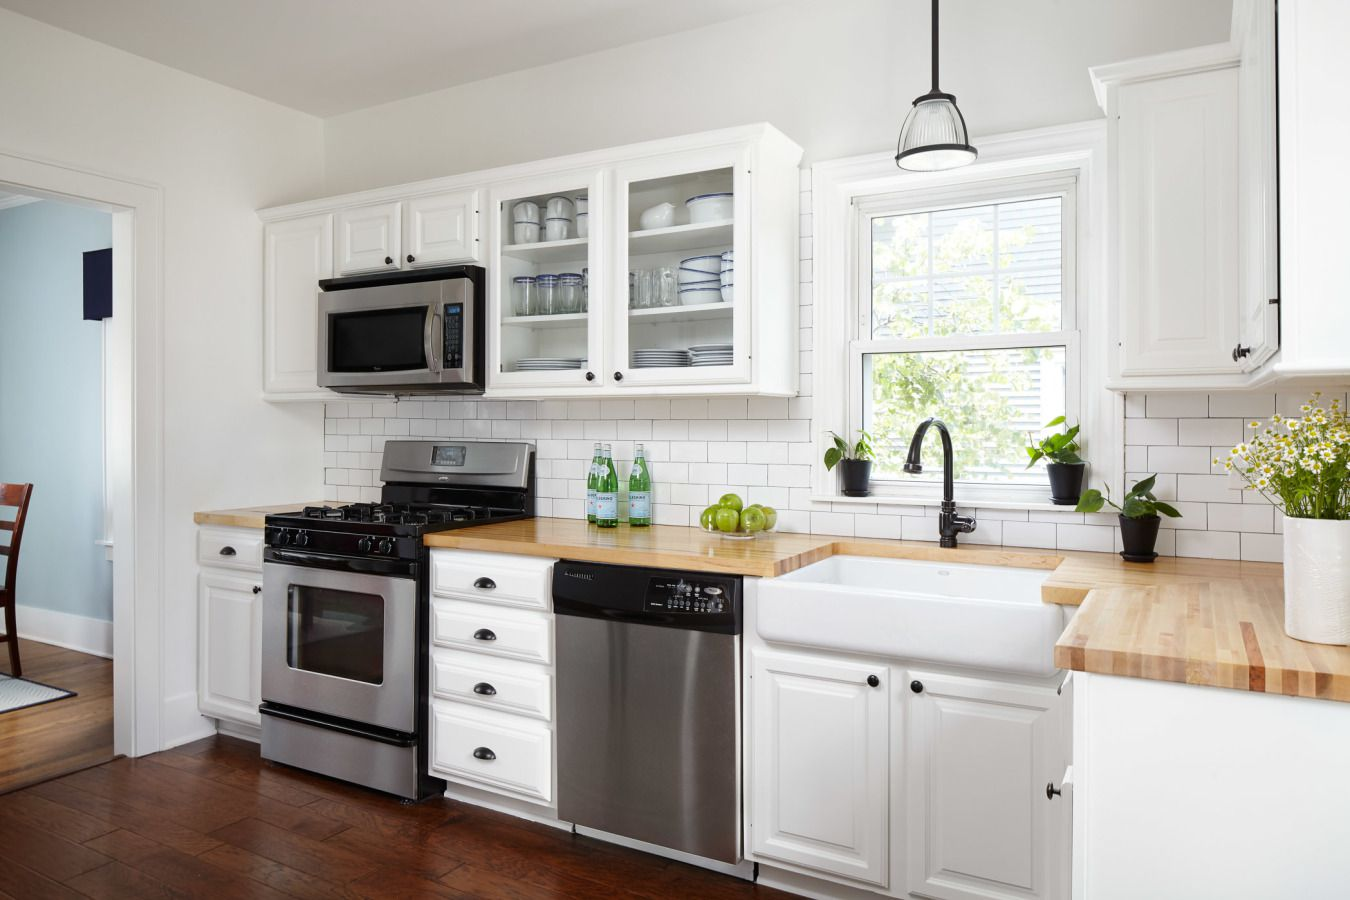 16 Modern Kitchens With Butcher Block Countertops on Kitchen Counter Decor Modern  id=67662